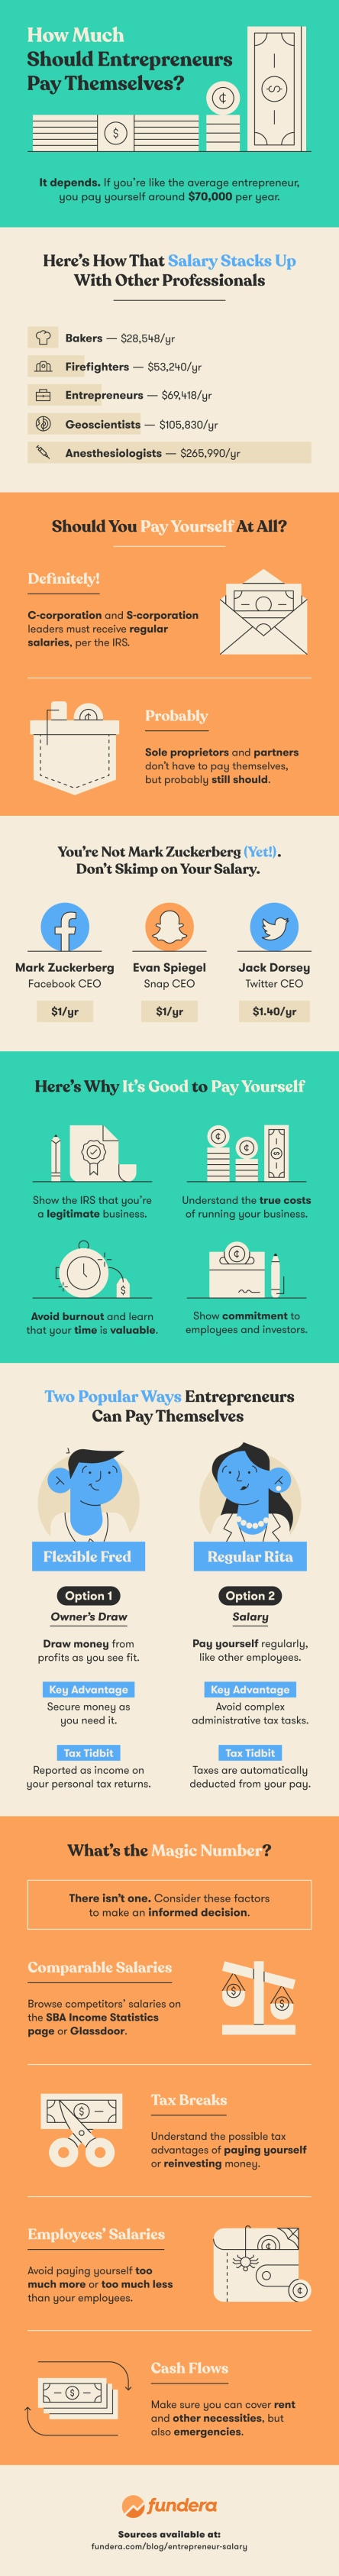 how-much-should-entrepreneurs-pay-themselves